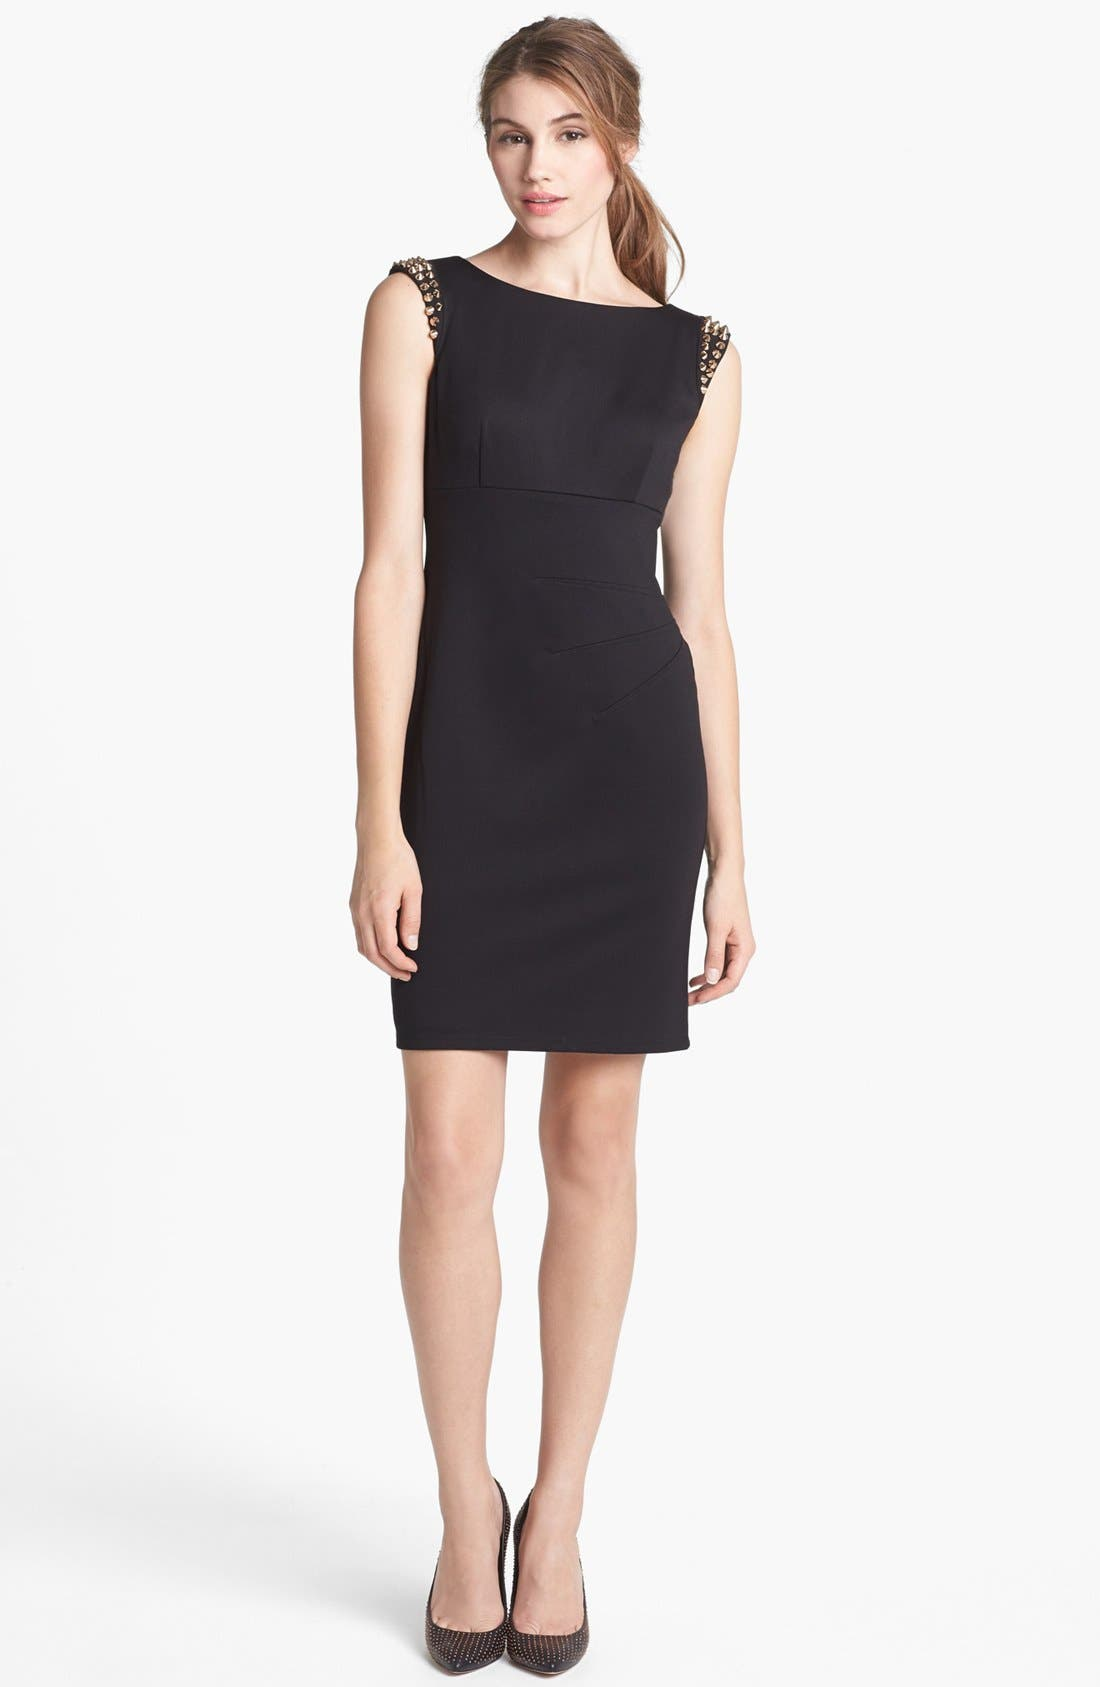 Alternate Image 1 Selected - Vince Camuto Spiked Shoulder Ponte Knit Sheath Dress